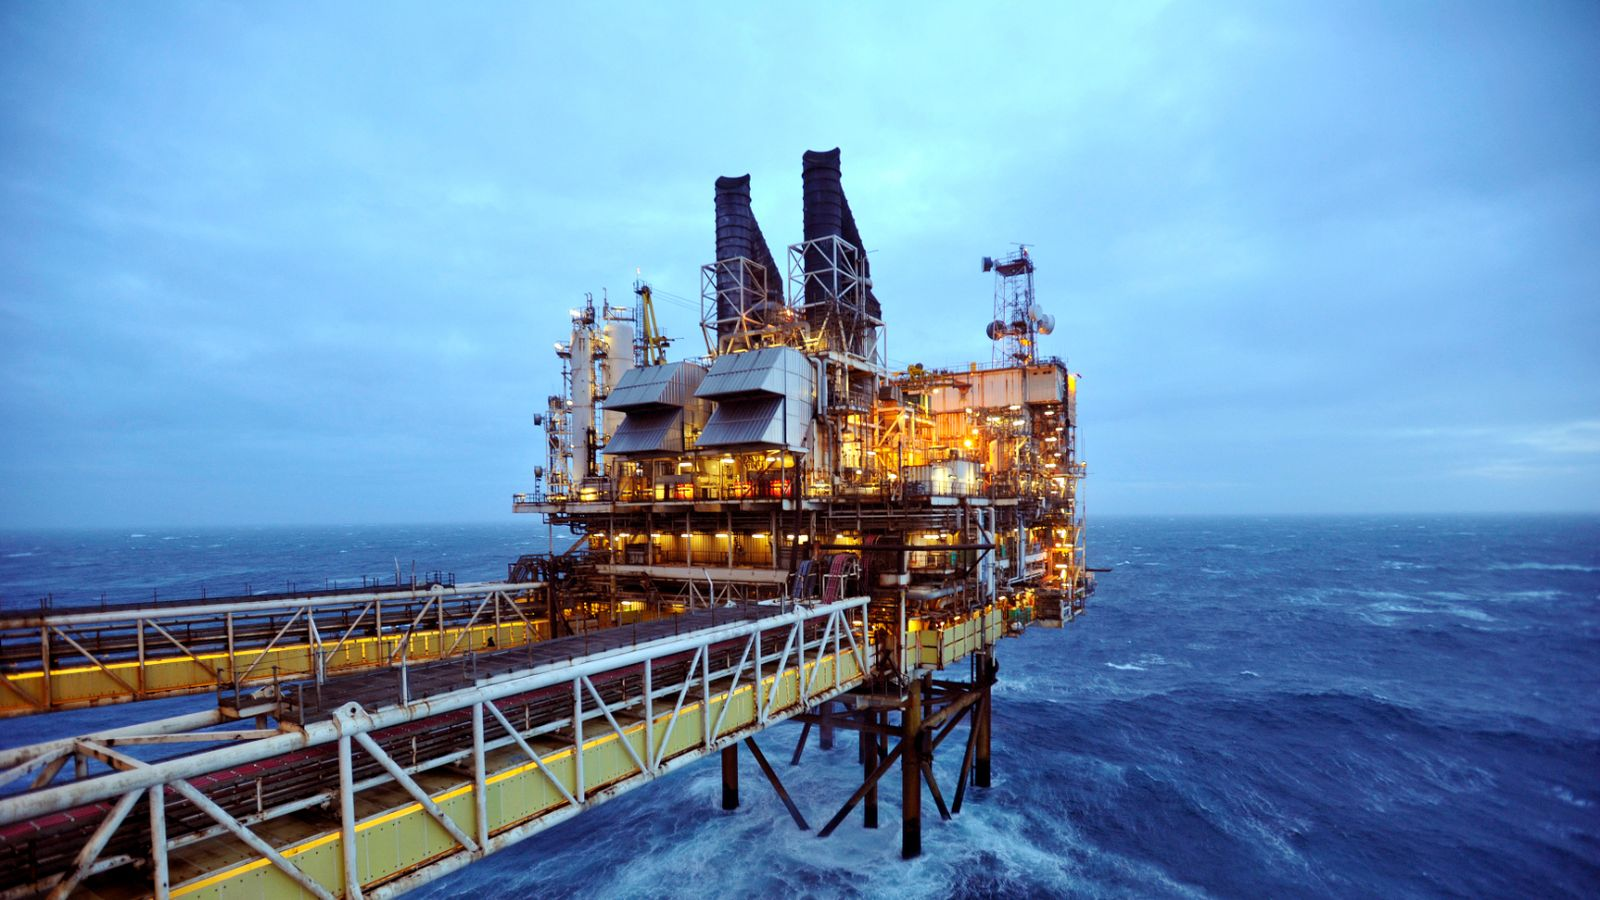 Revealed: ExxonMobil, Shell and BP among oil companies paying negative tax in UK on some North Sea operations